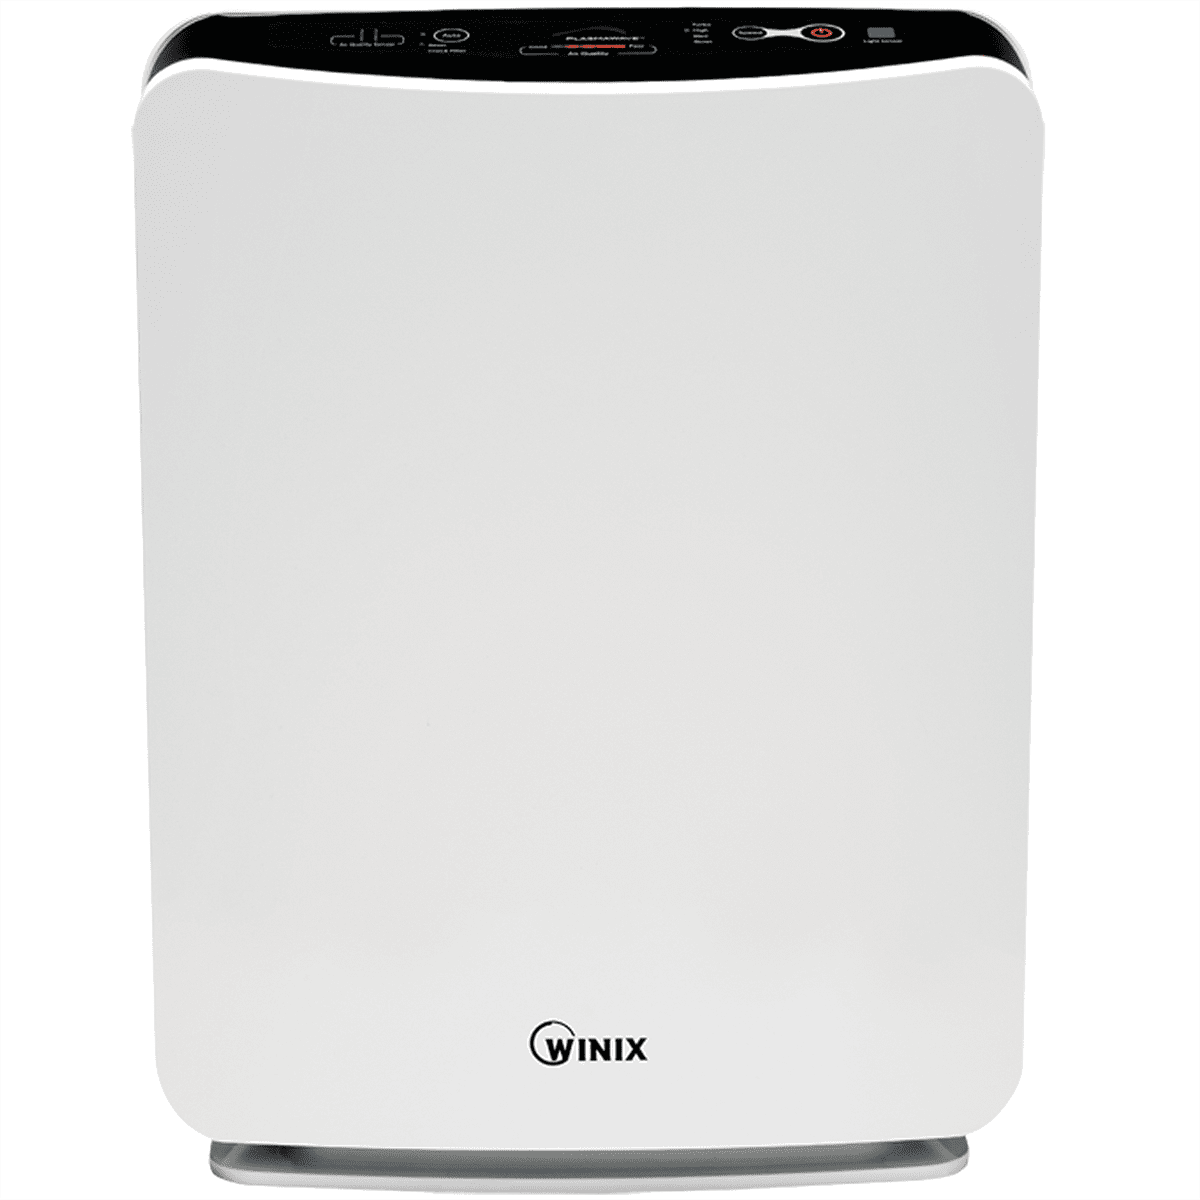 Winix P300 FresHome HEPA Air Cleaner with PlasmaWave Technology wi3084